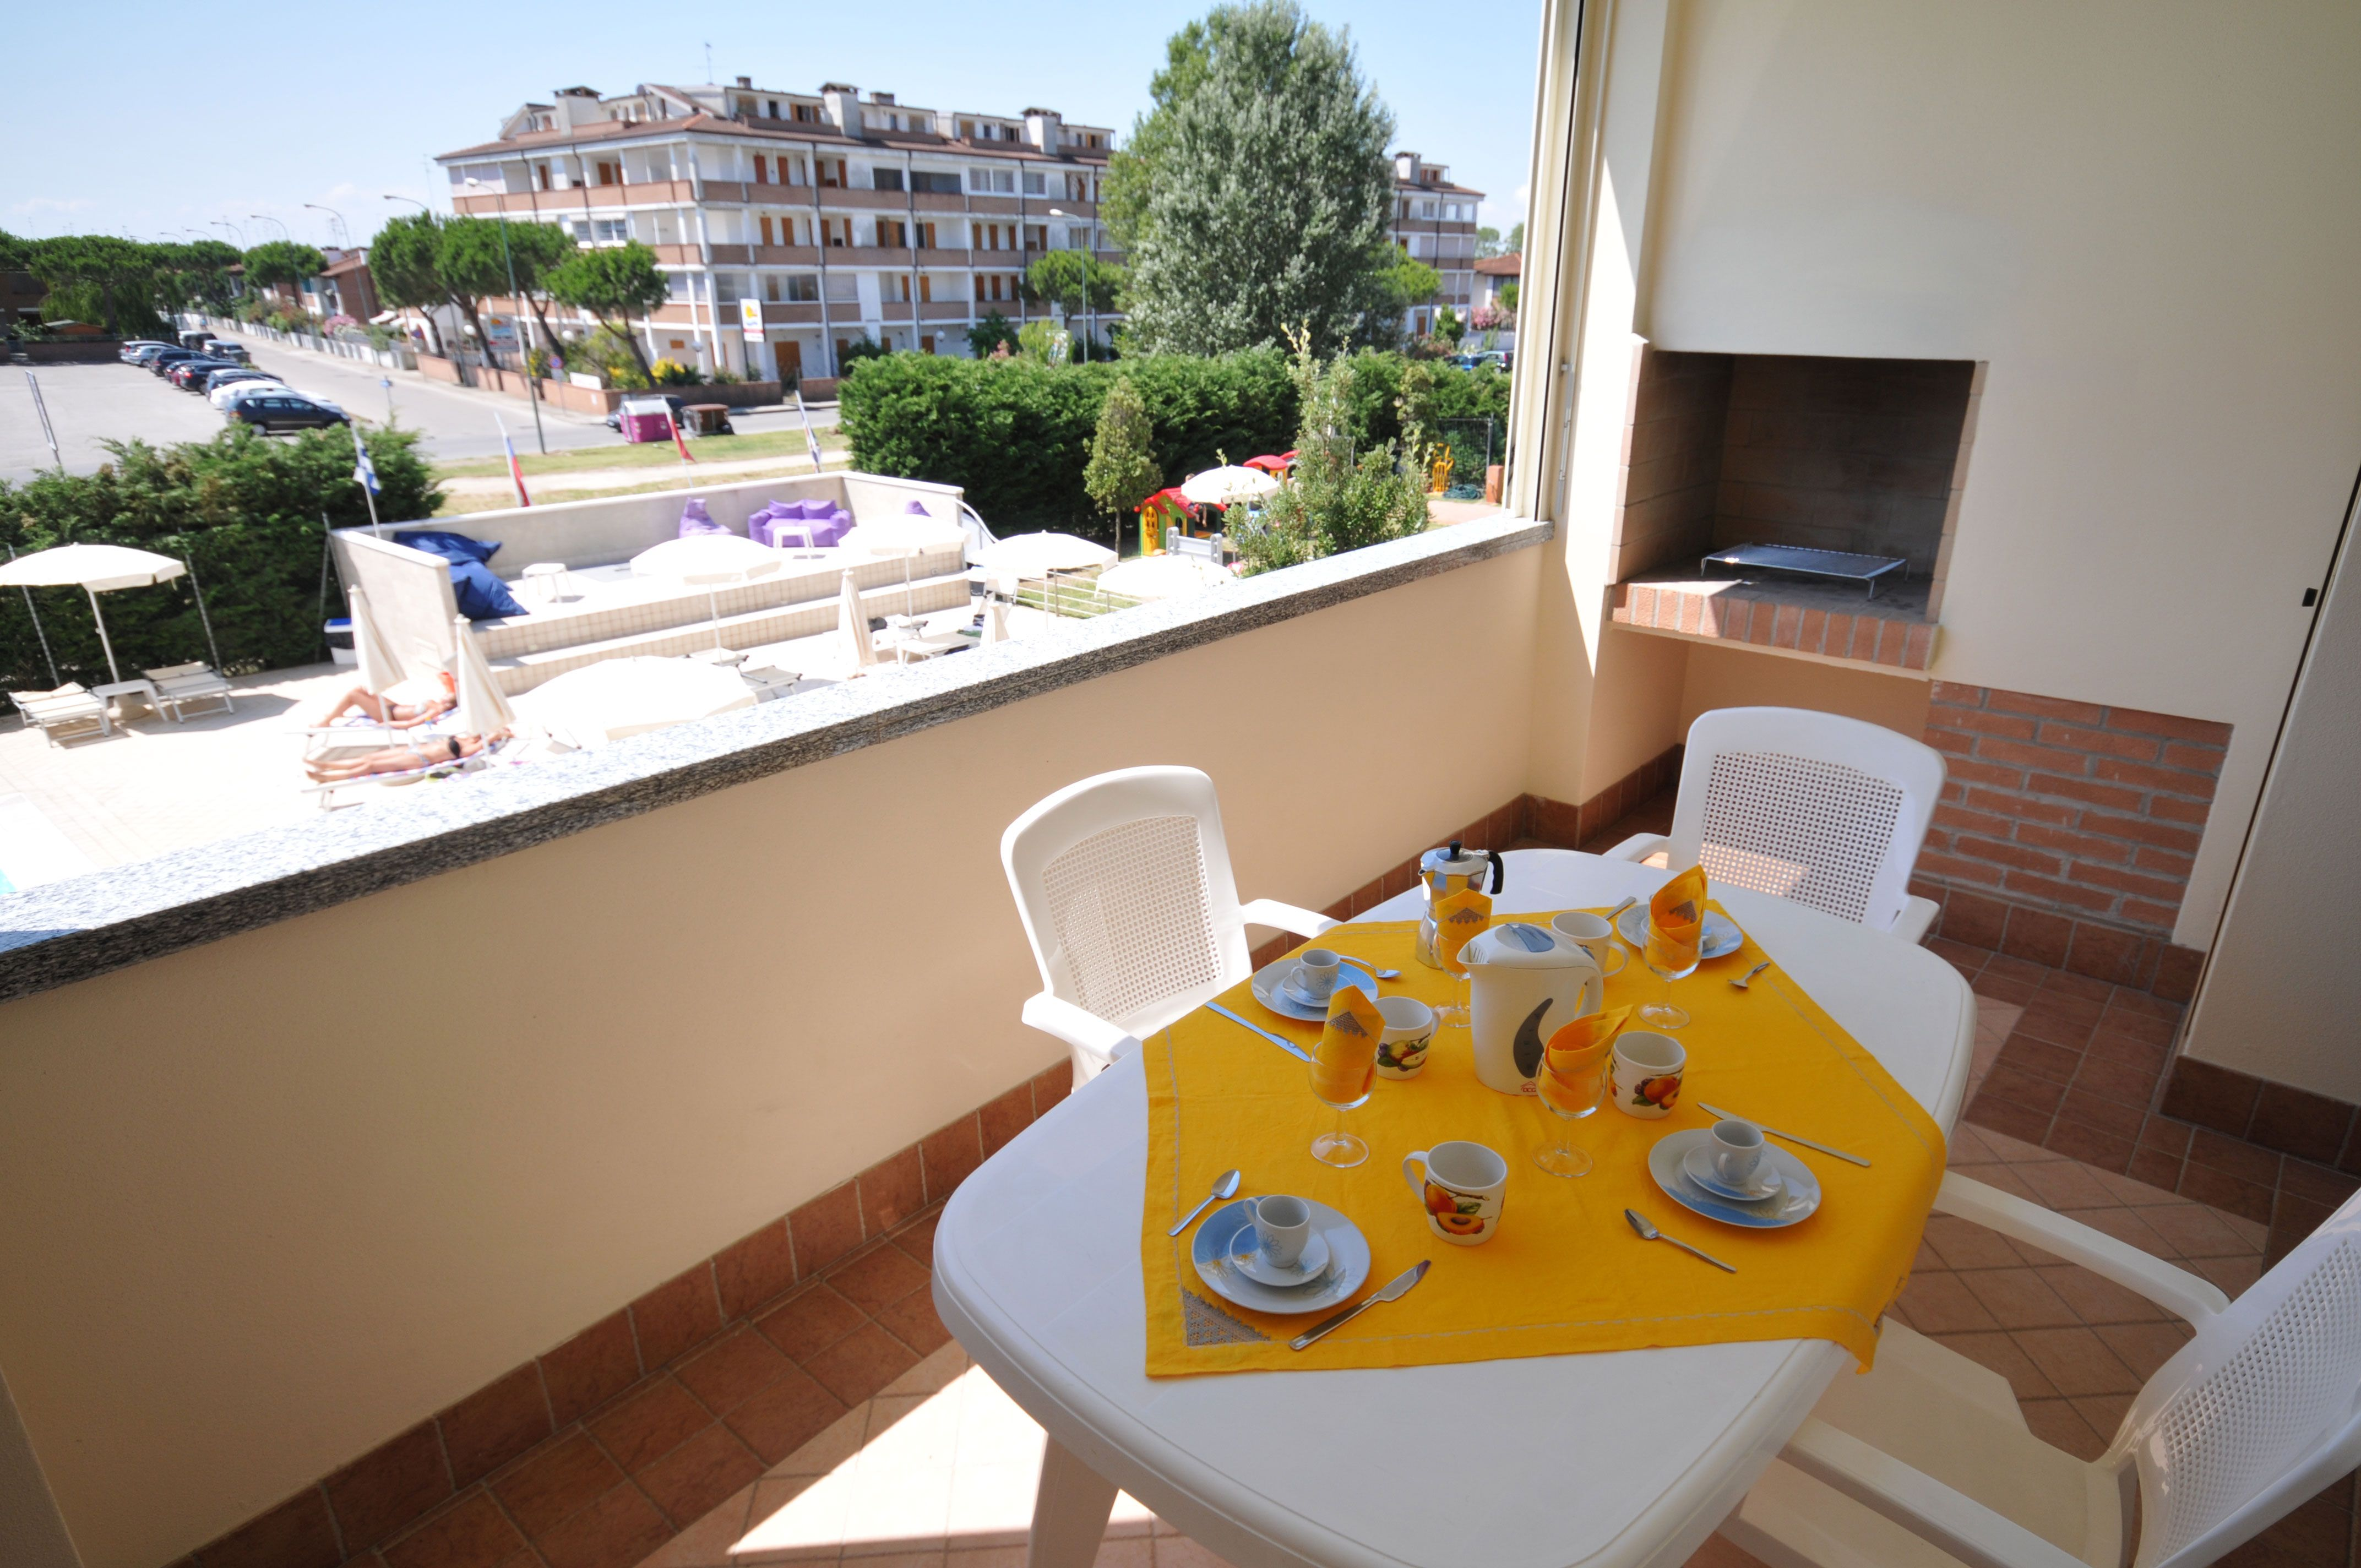 Balcony or terrace with table chairs and barbeque grill